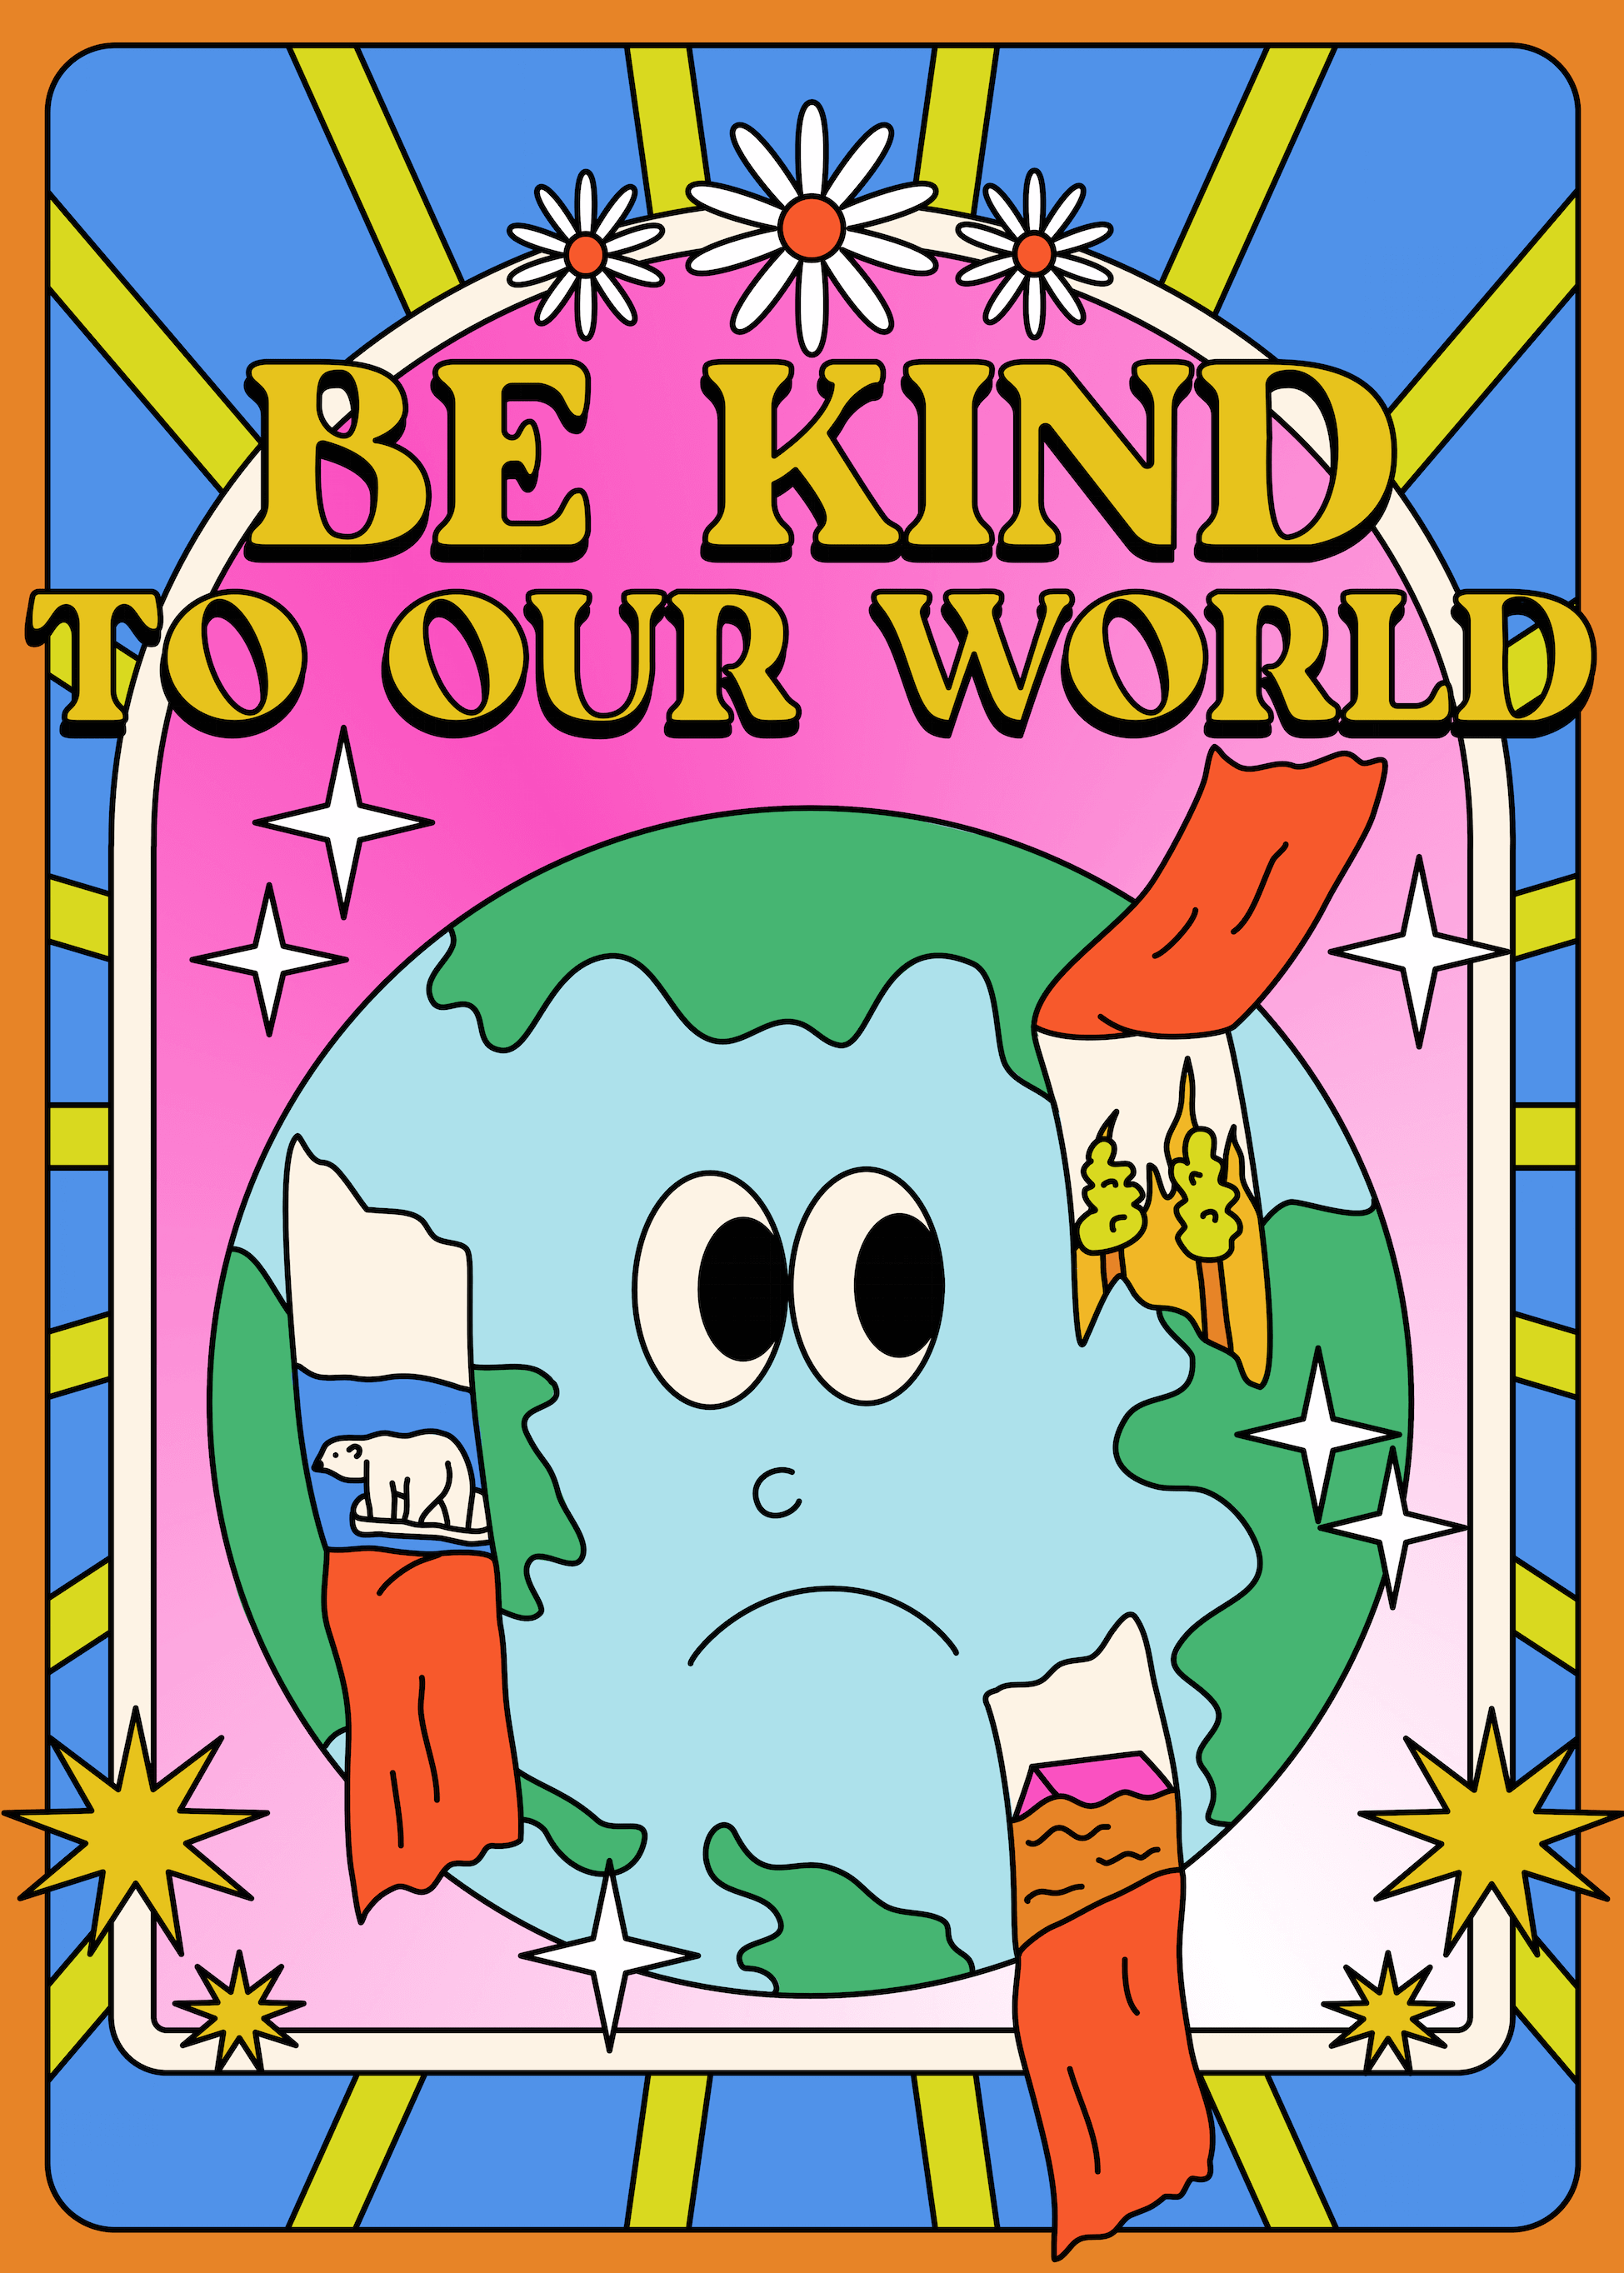 Be Kind To Our World main image